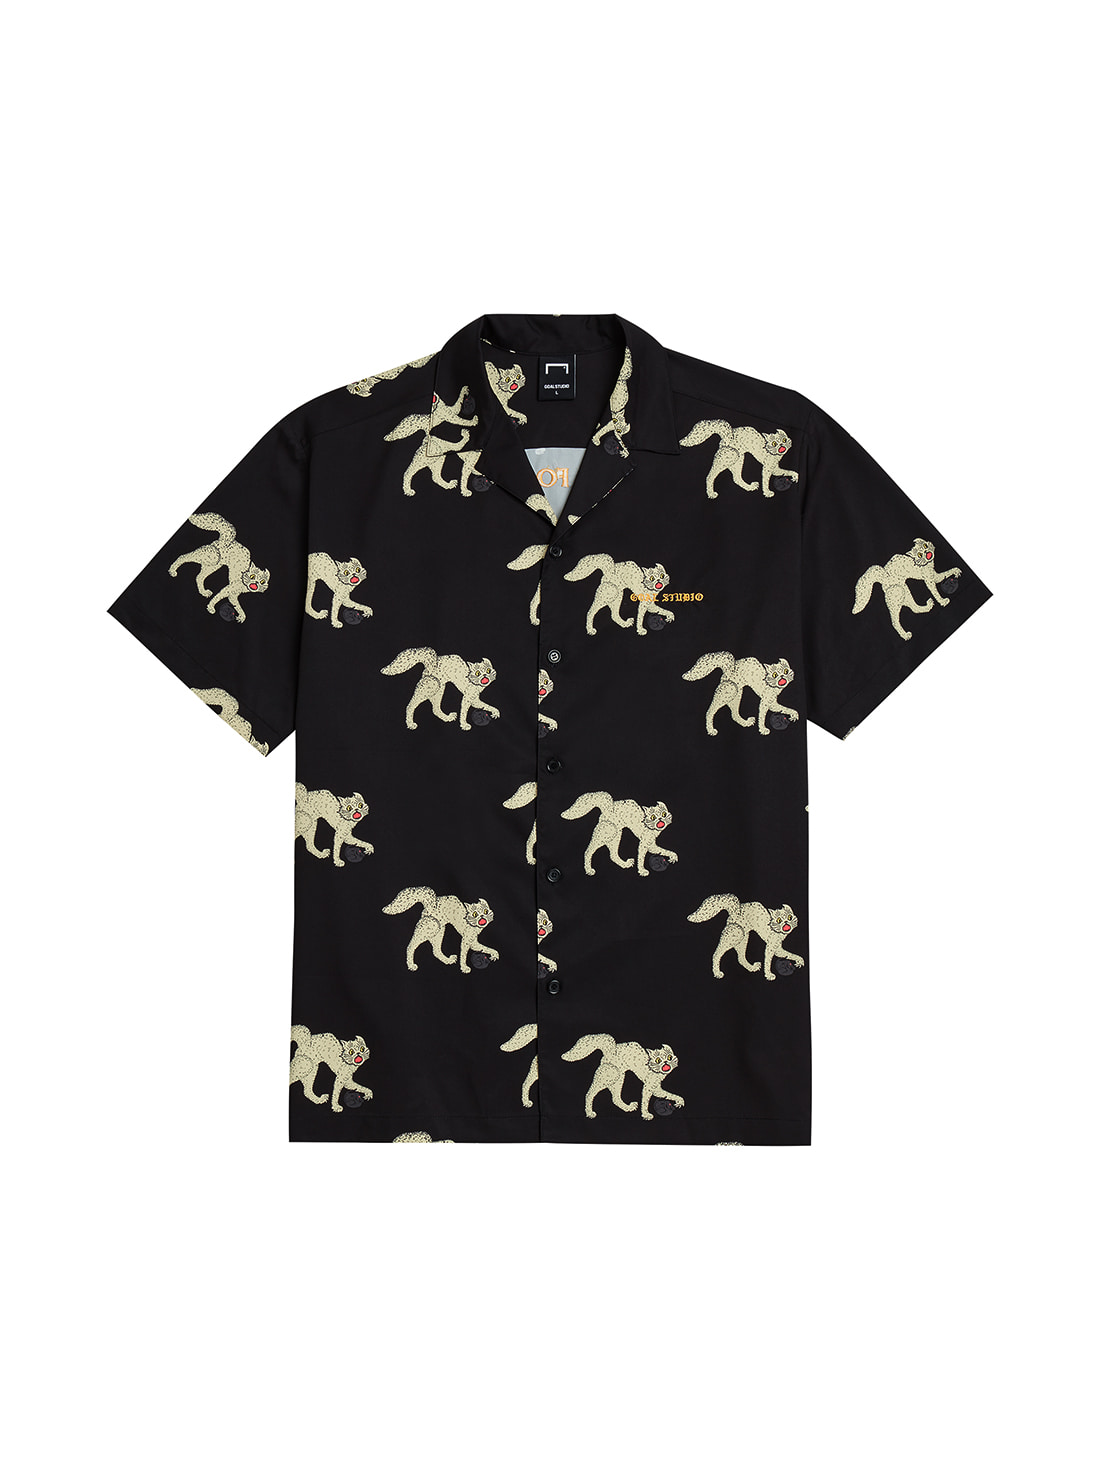 MC ALL OVER PATTERN HALF SHIRTS - BLACK